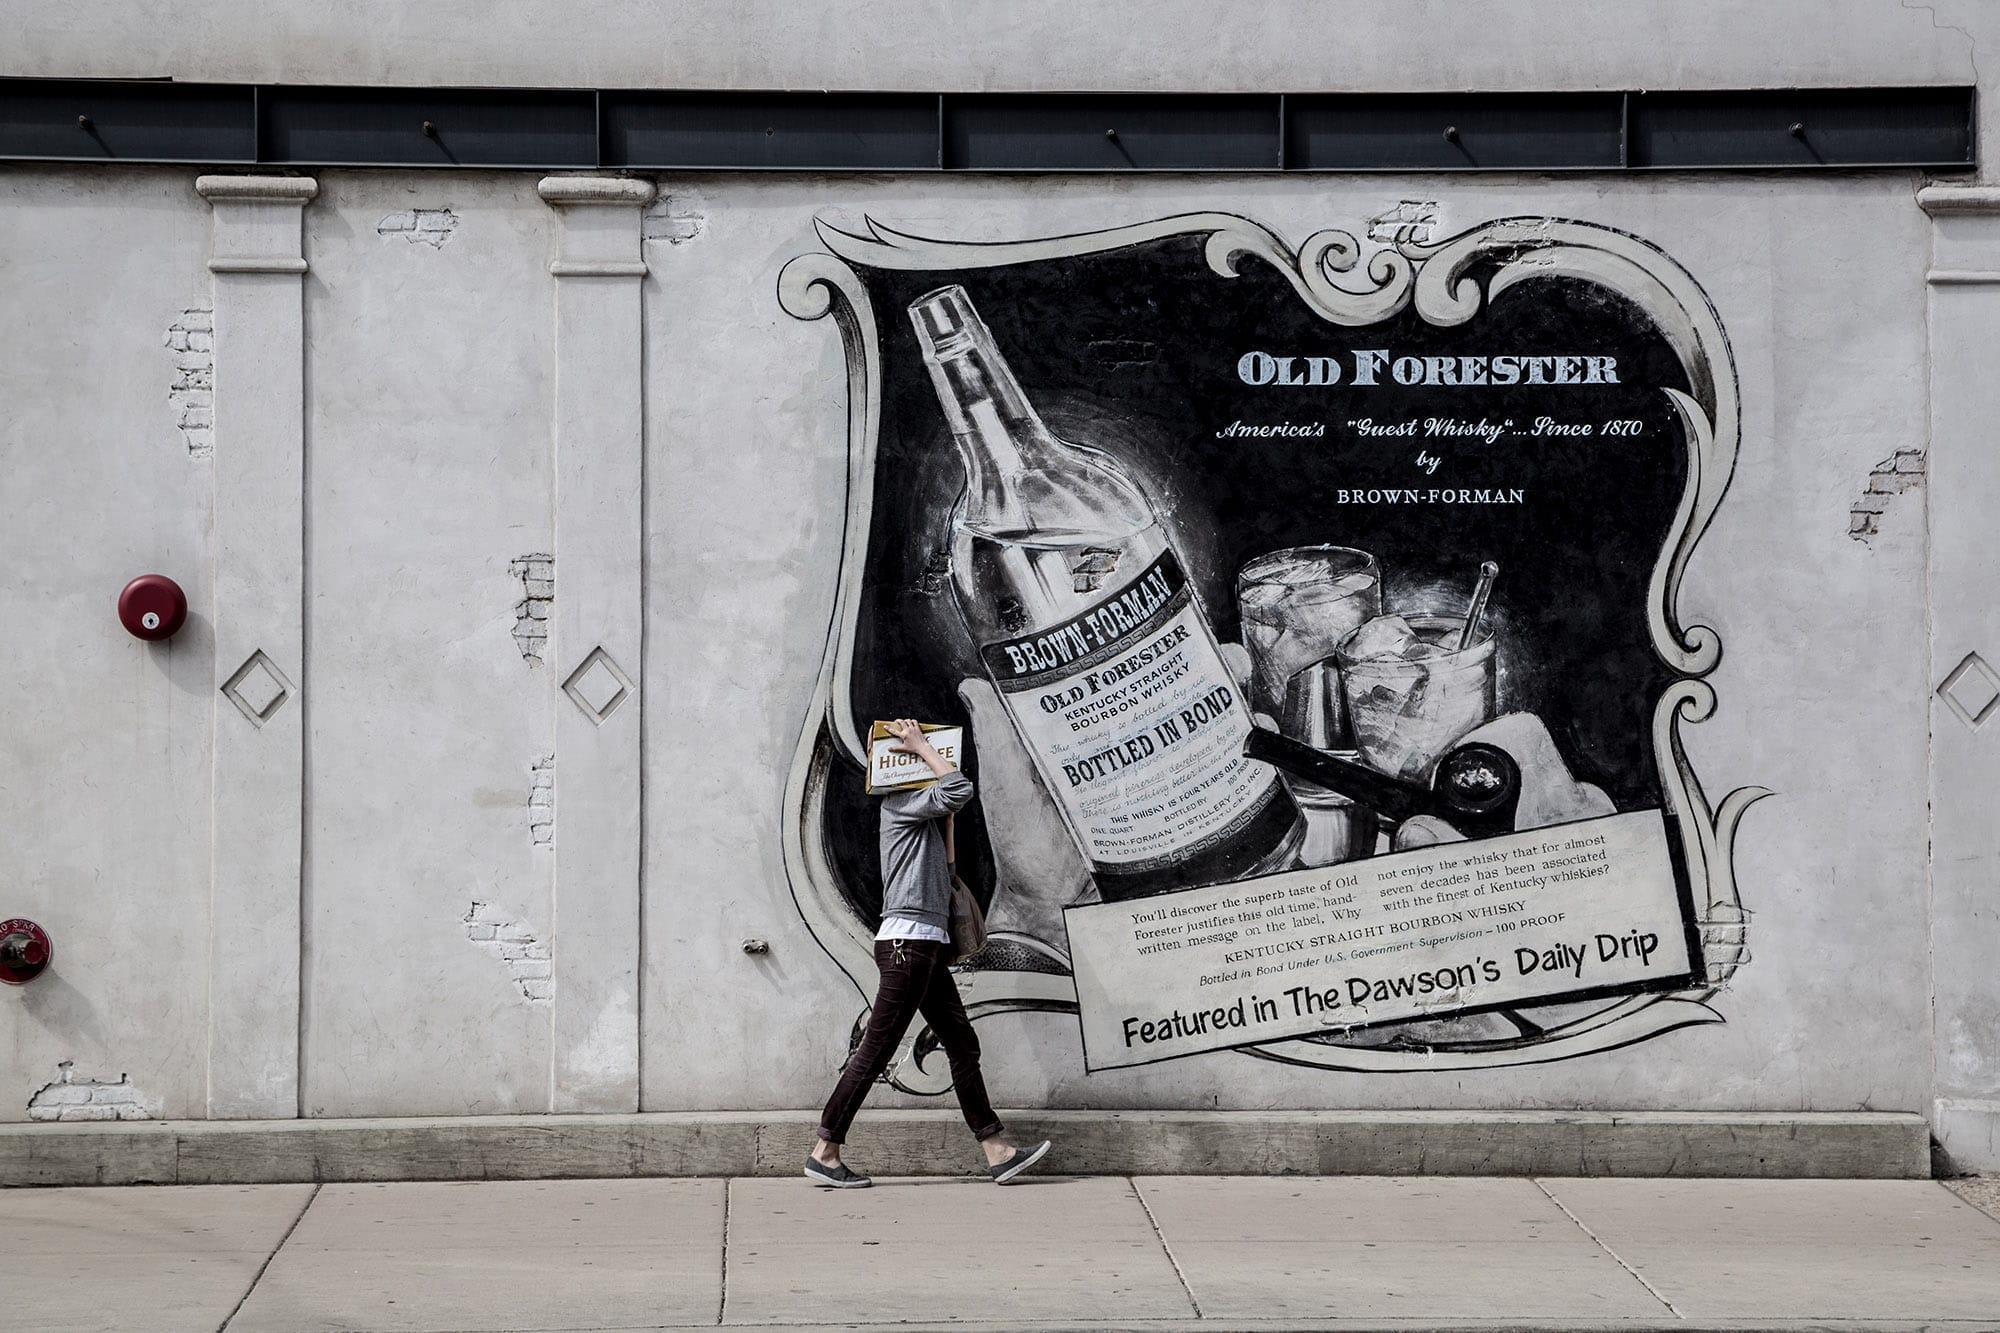 Cultured language: why advertising authentically and informally is important